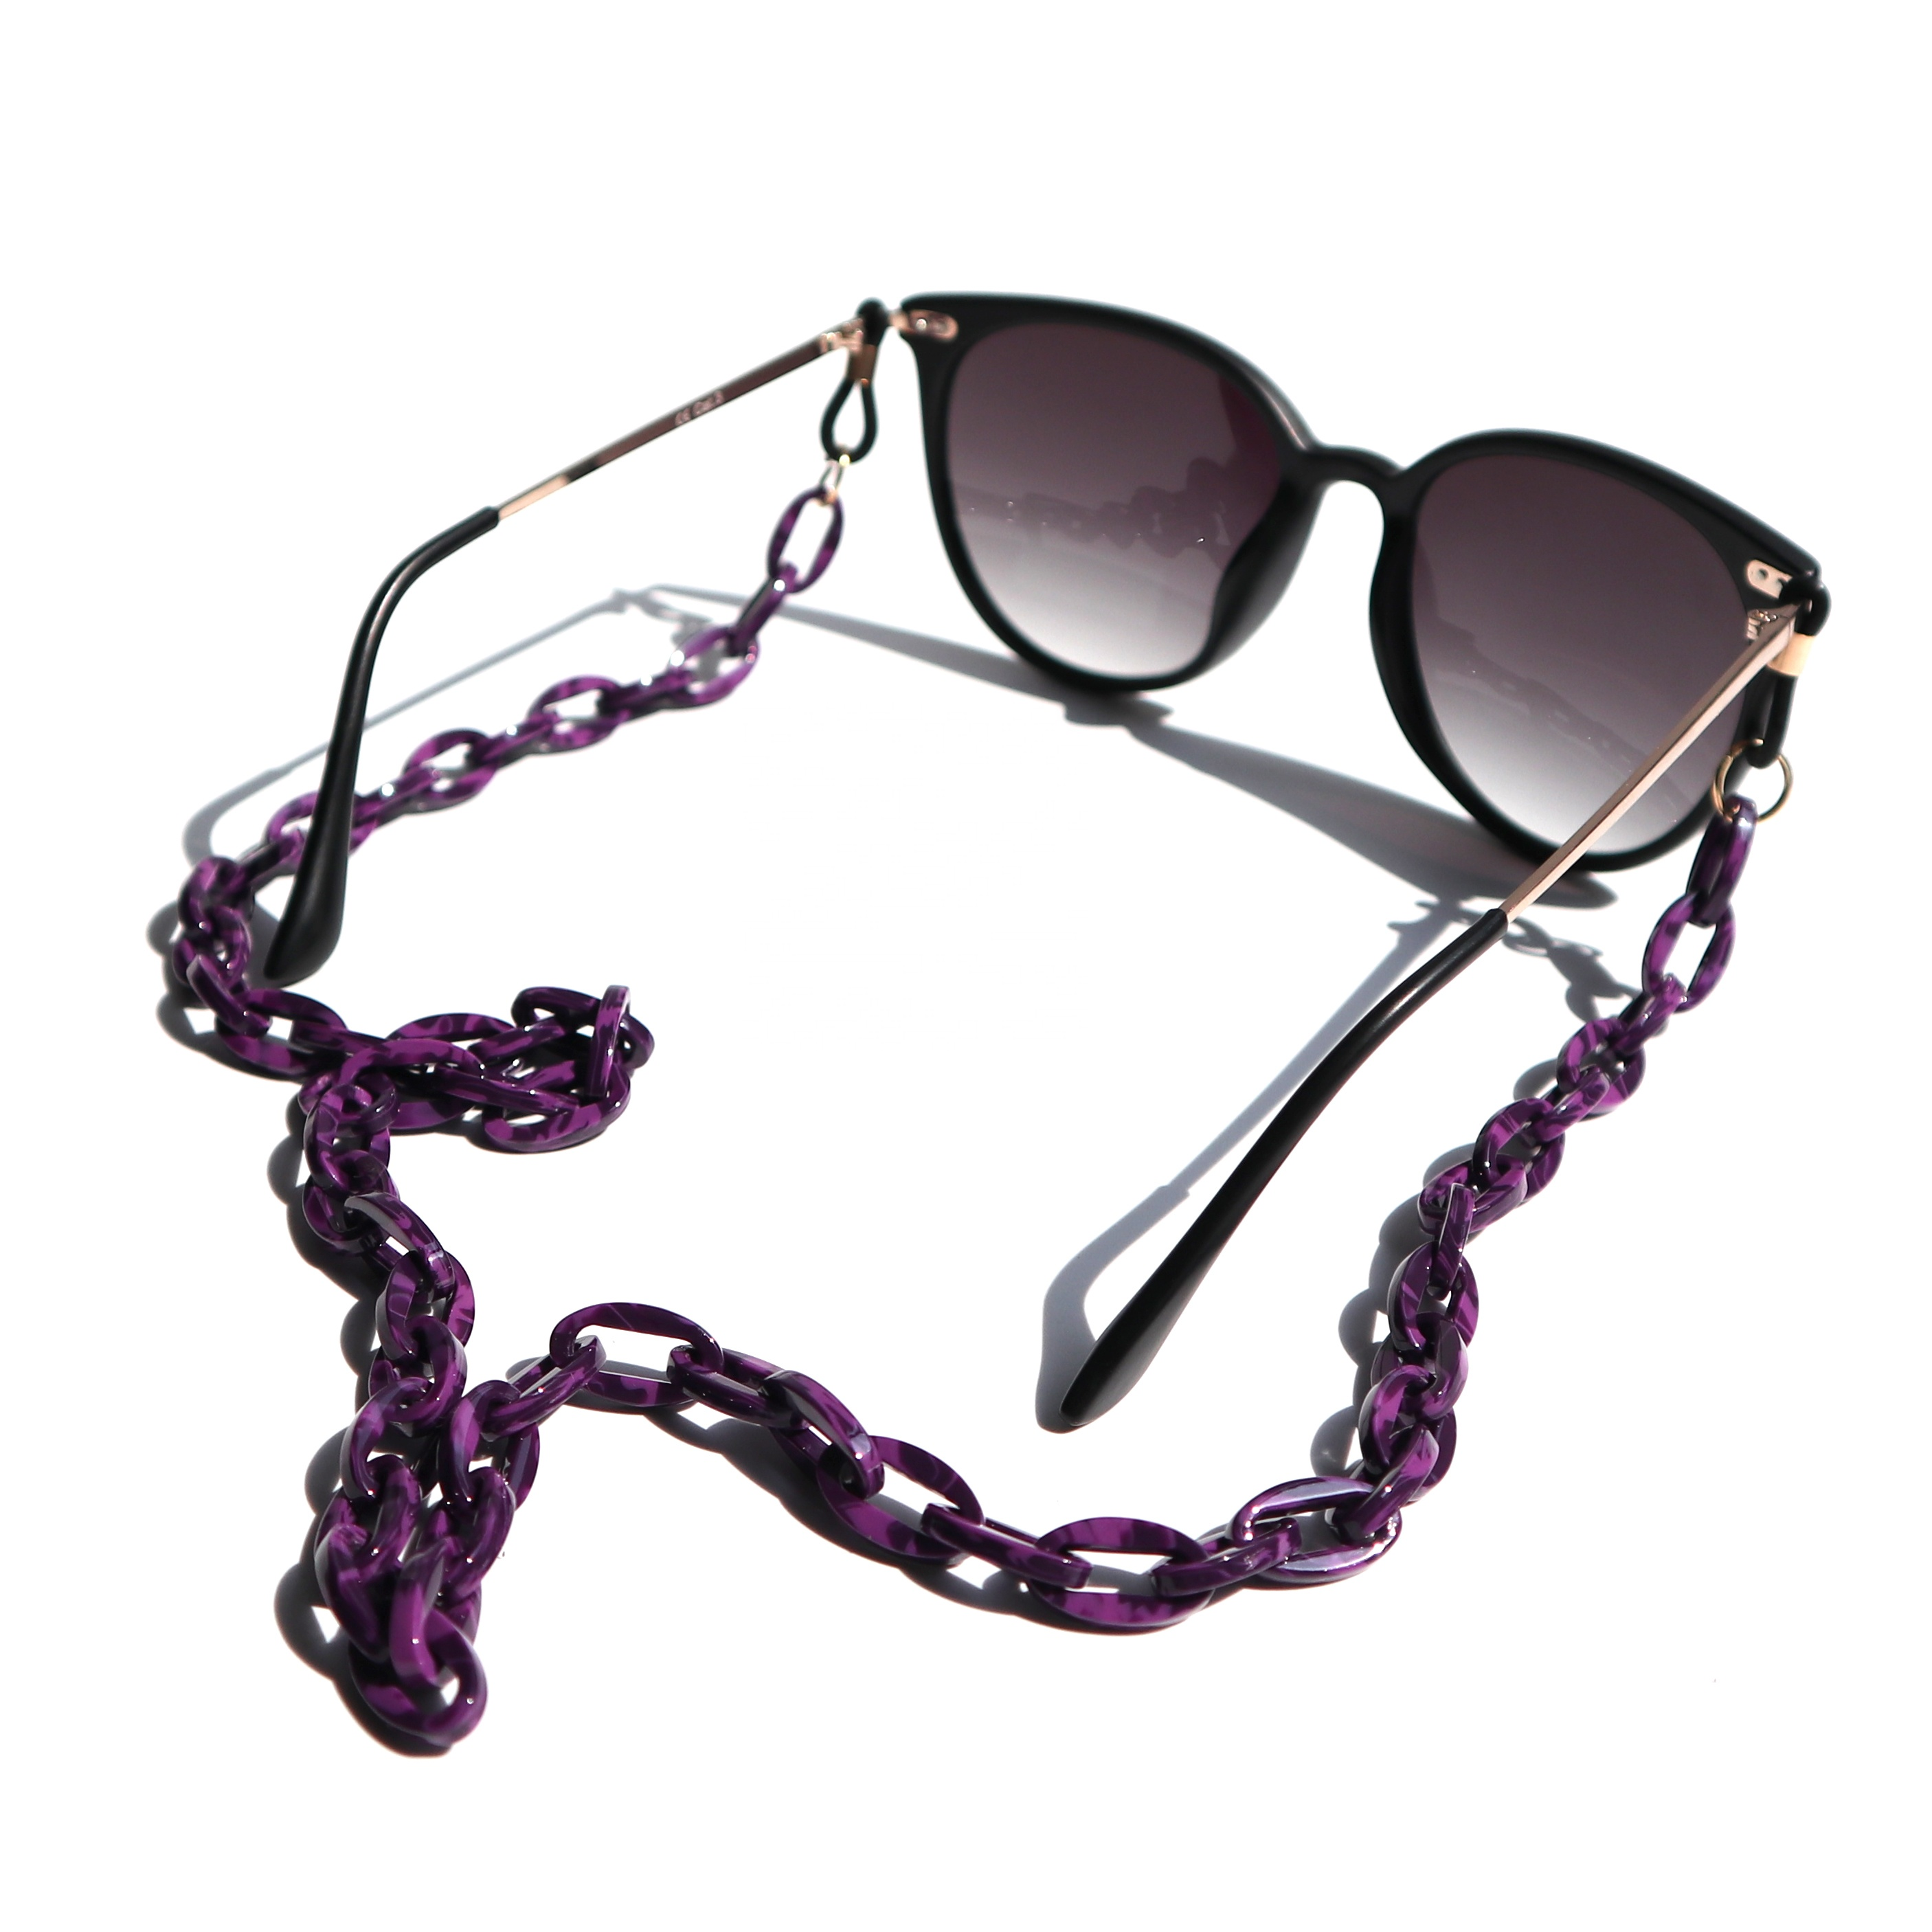 Luxury Eyeglasses Chain Acetate Sunglasses Chain Holder Cords for Sunglasses Top Quality Stock Eye Glass Necklace Cord Chain